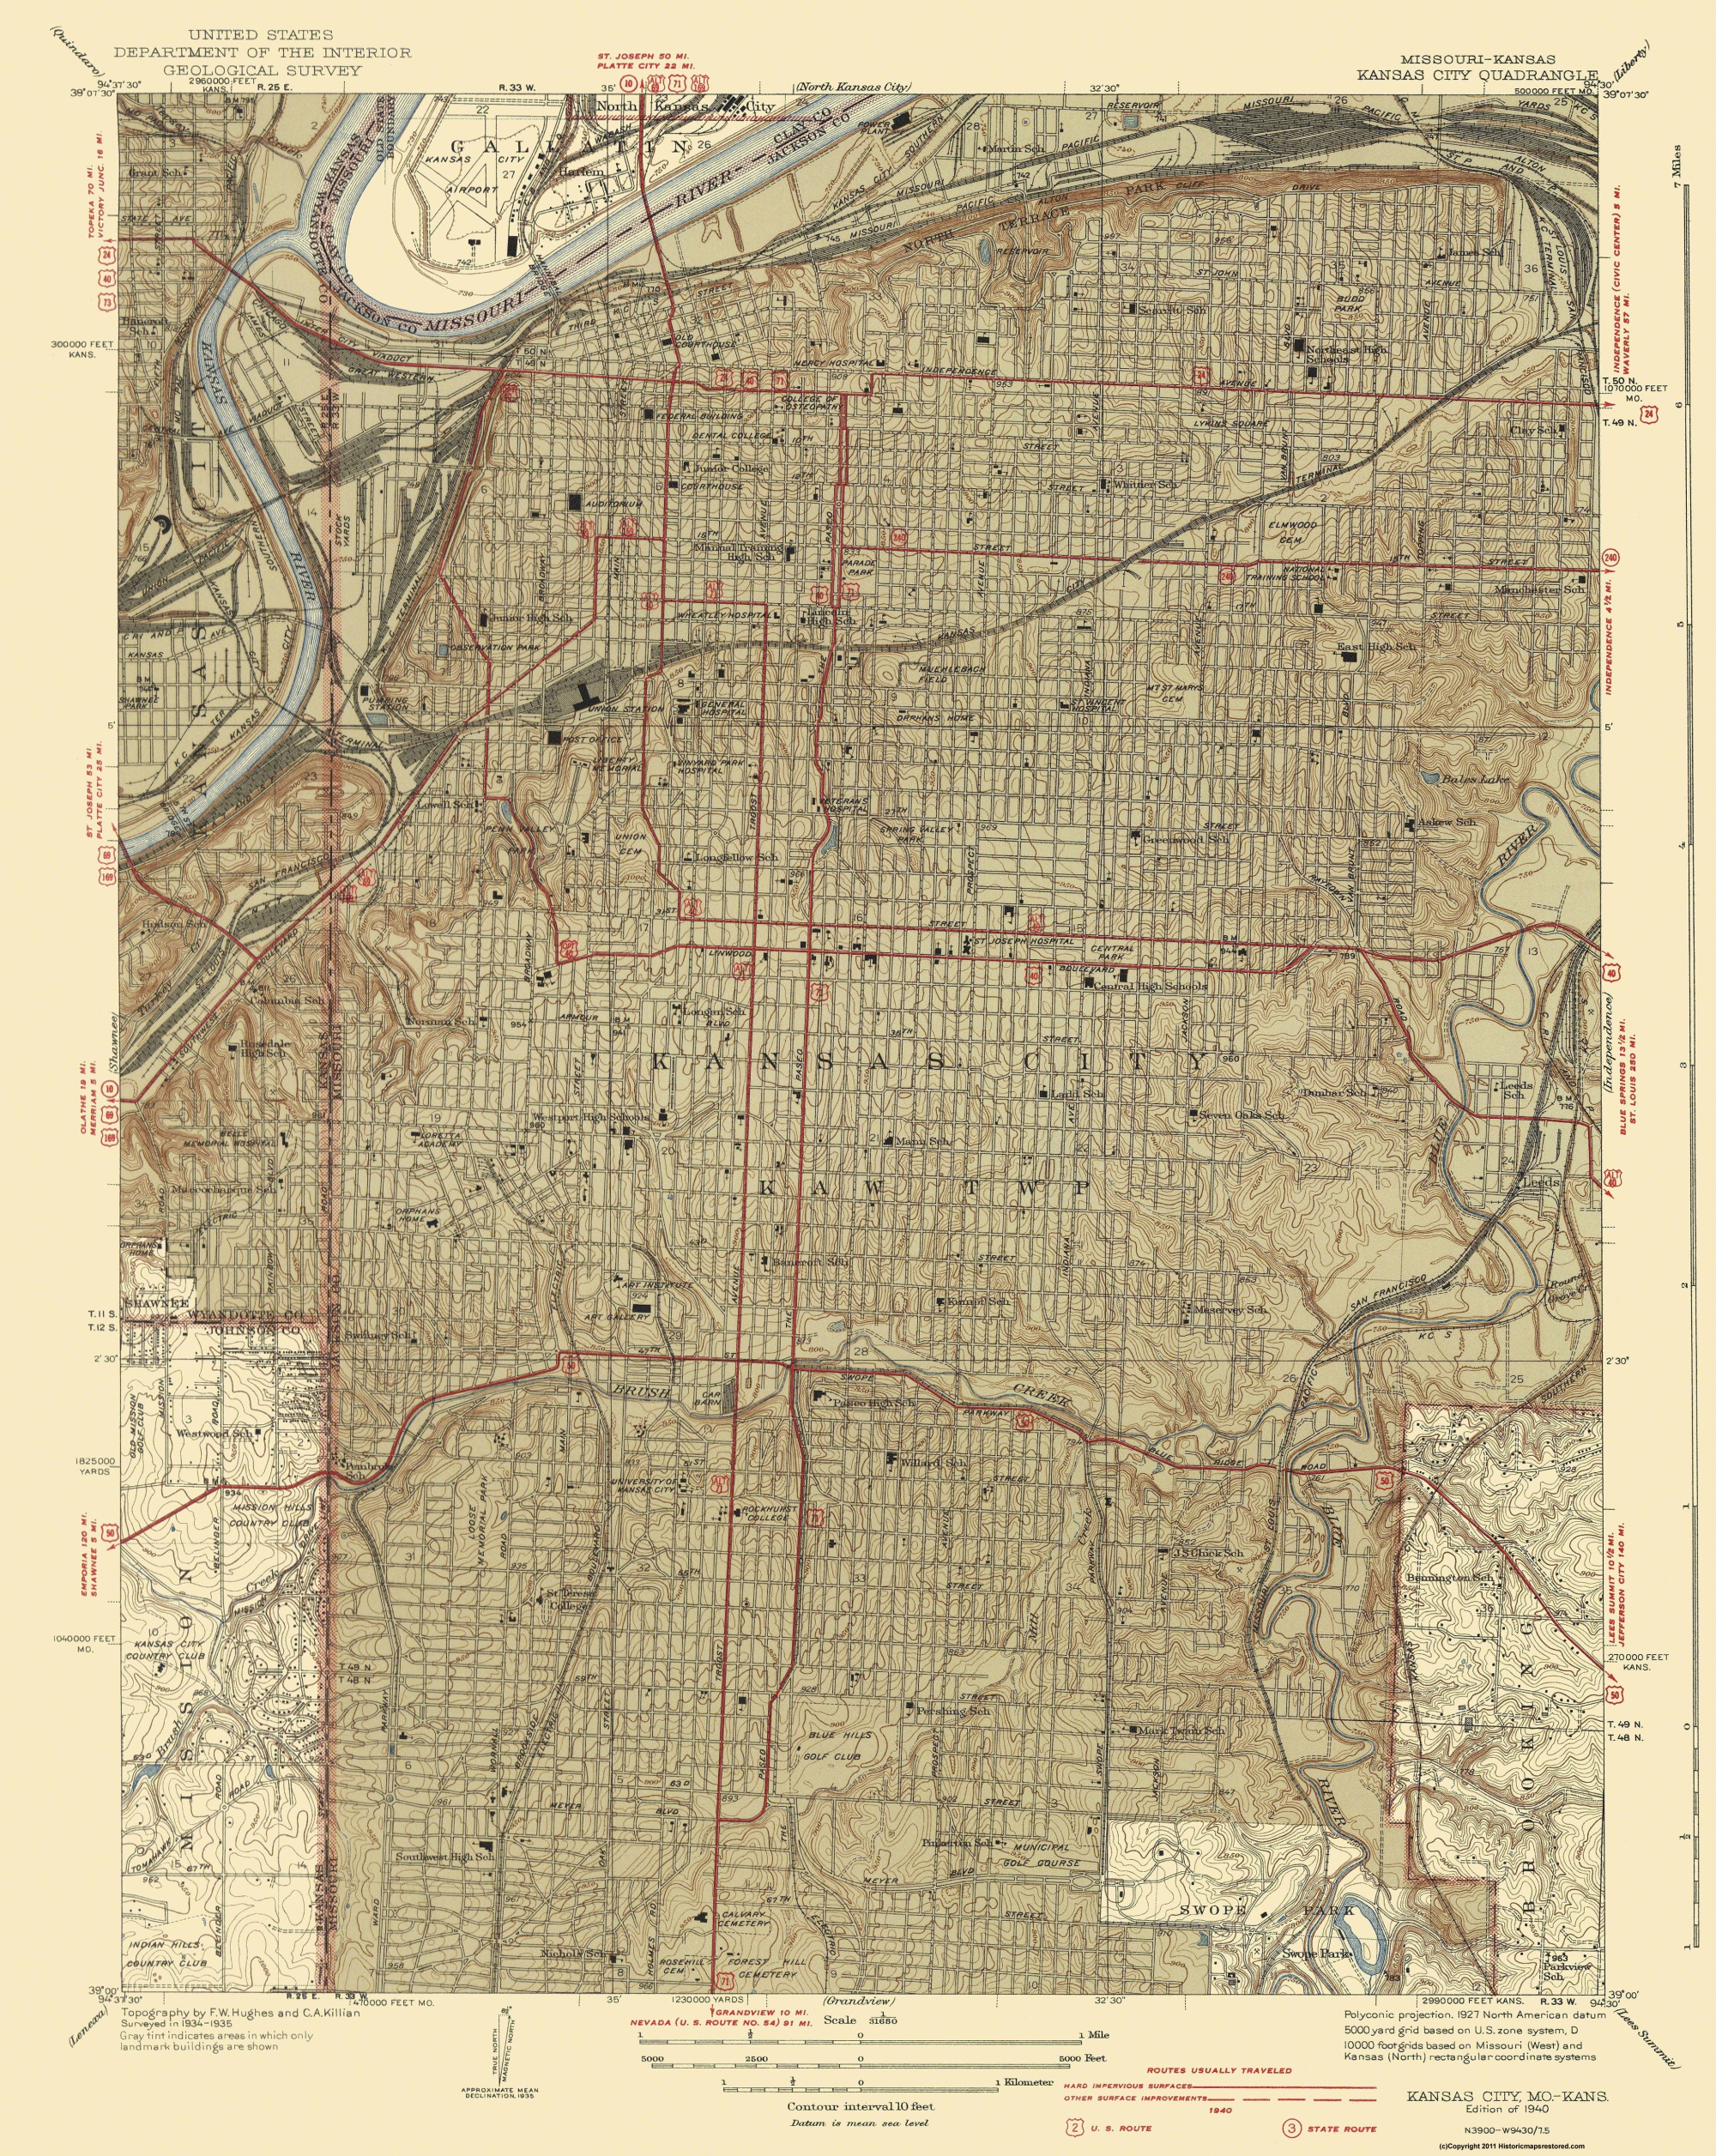 Old Topographical Map - Kansas City Missouri, Kansas 1940